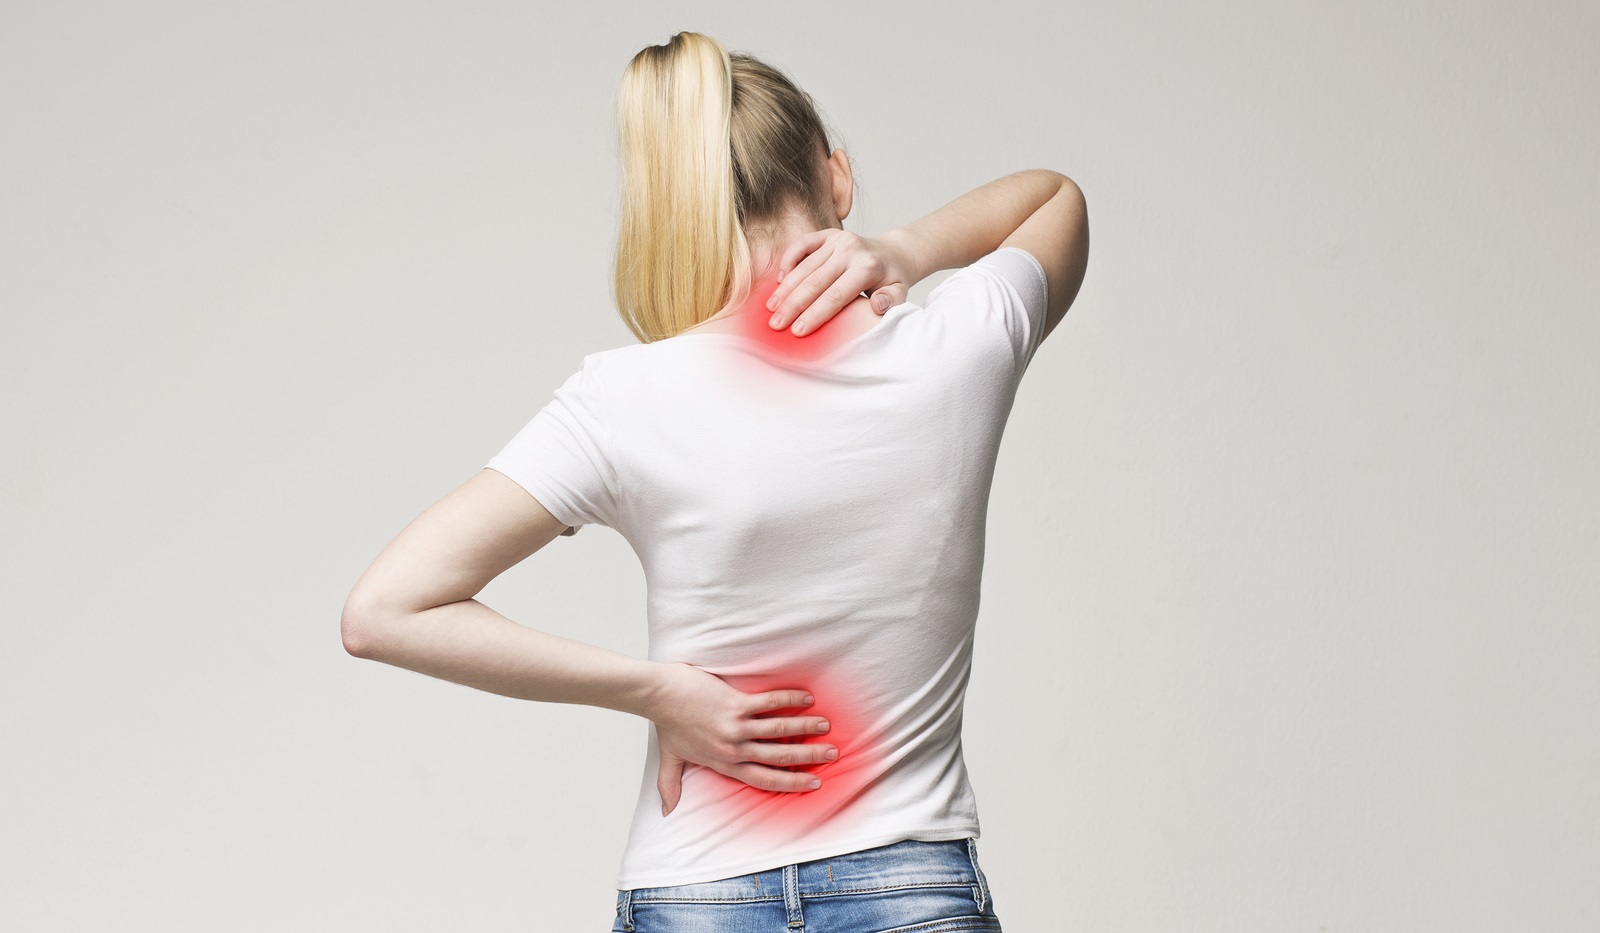 settlement for spinal cord acident injury